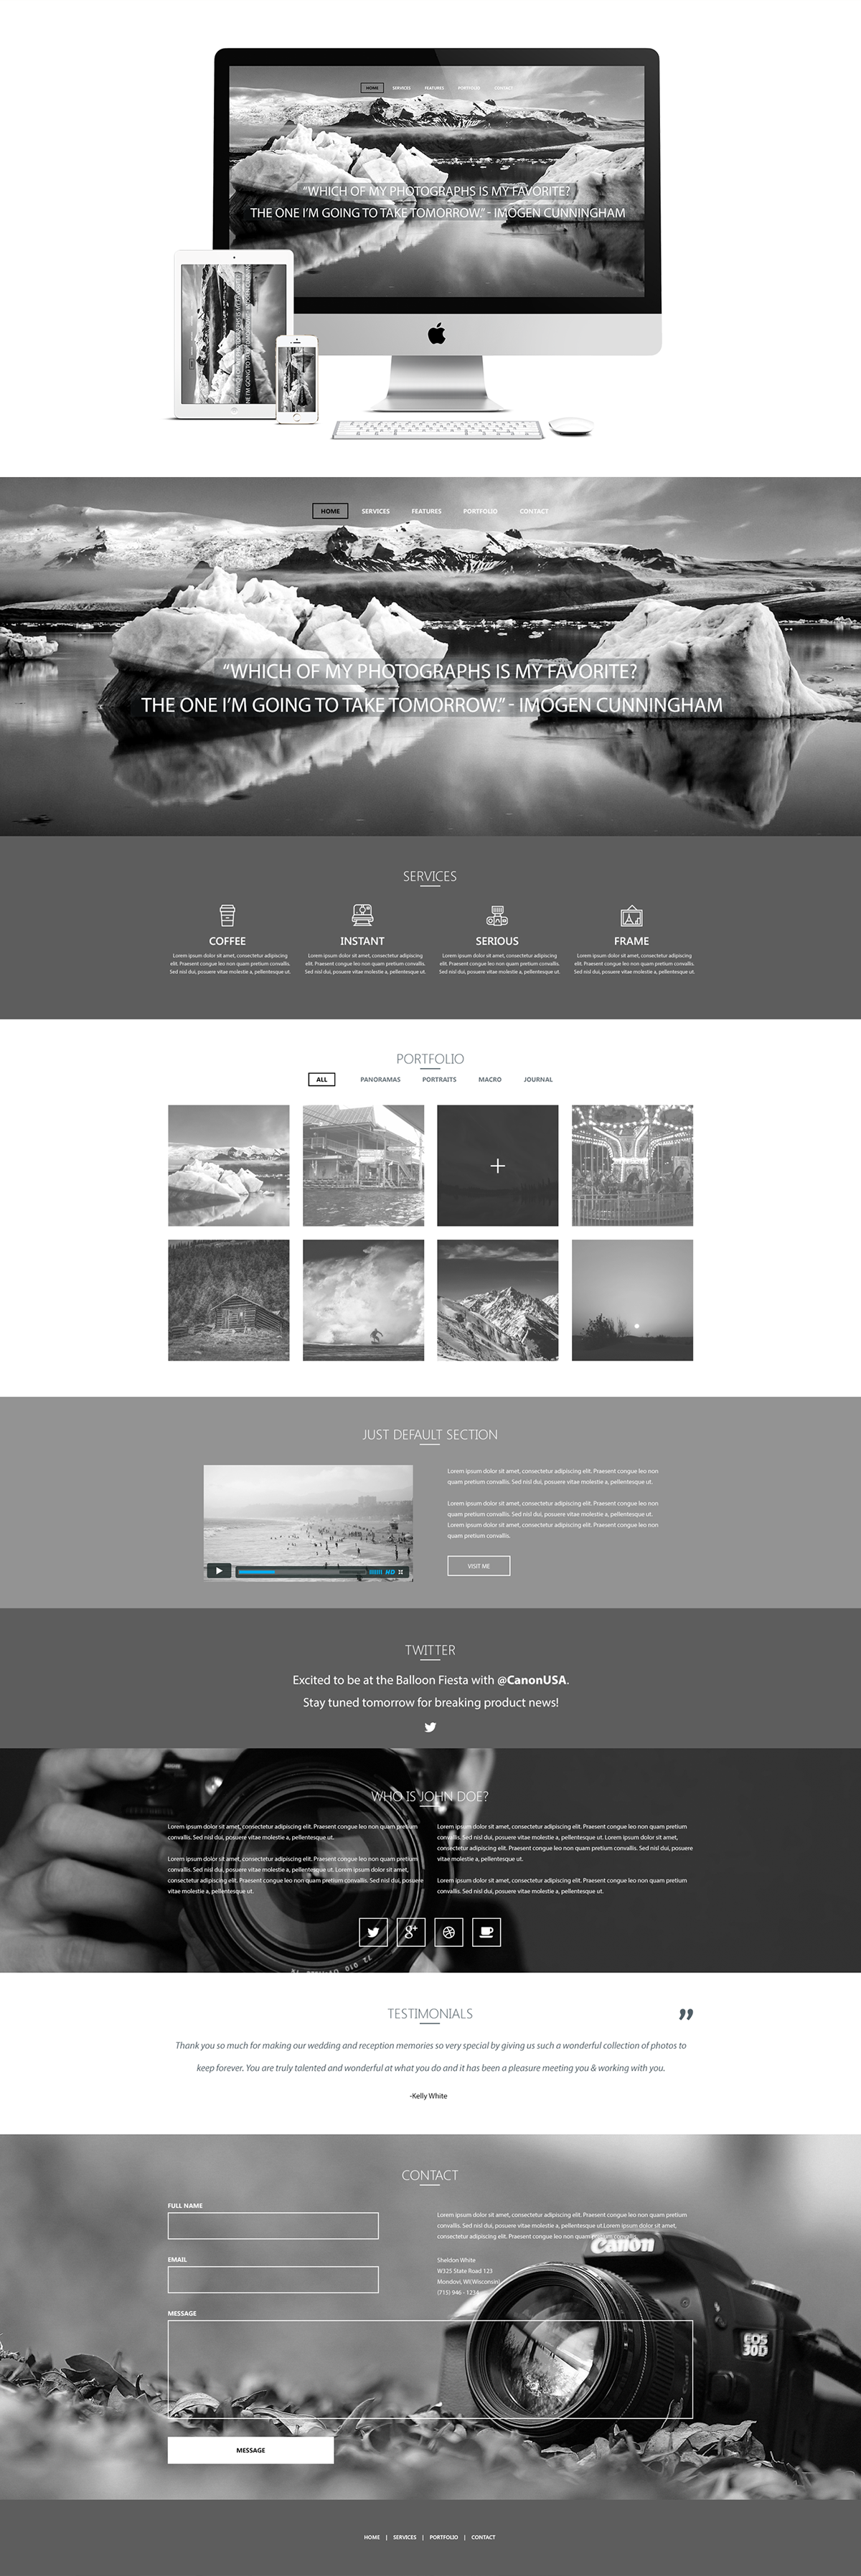 Parallax Photography Website Concept on Behance